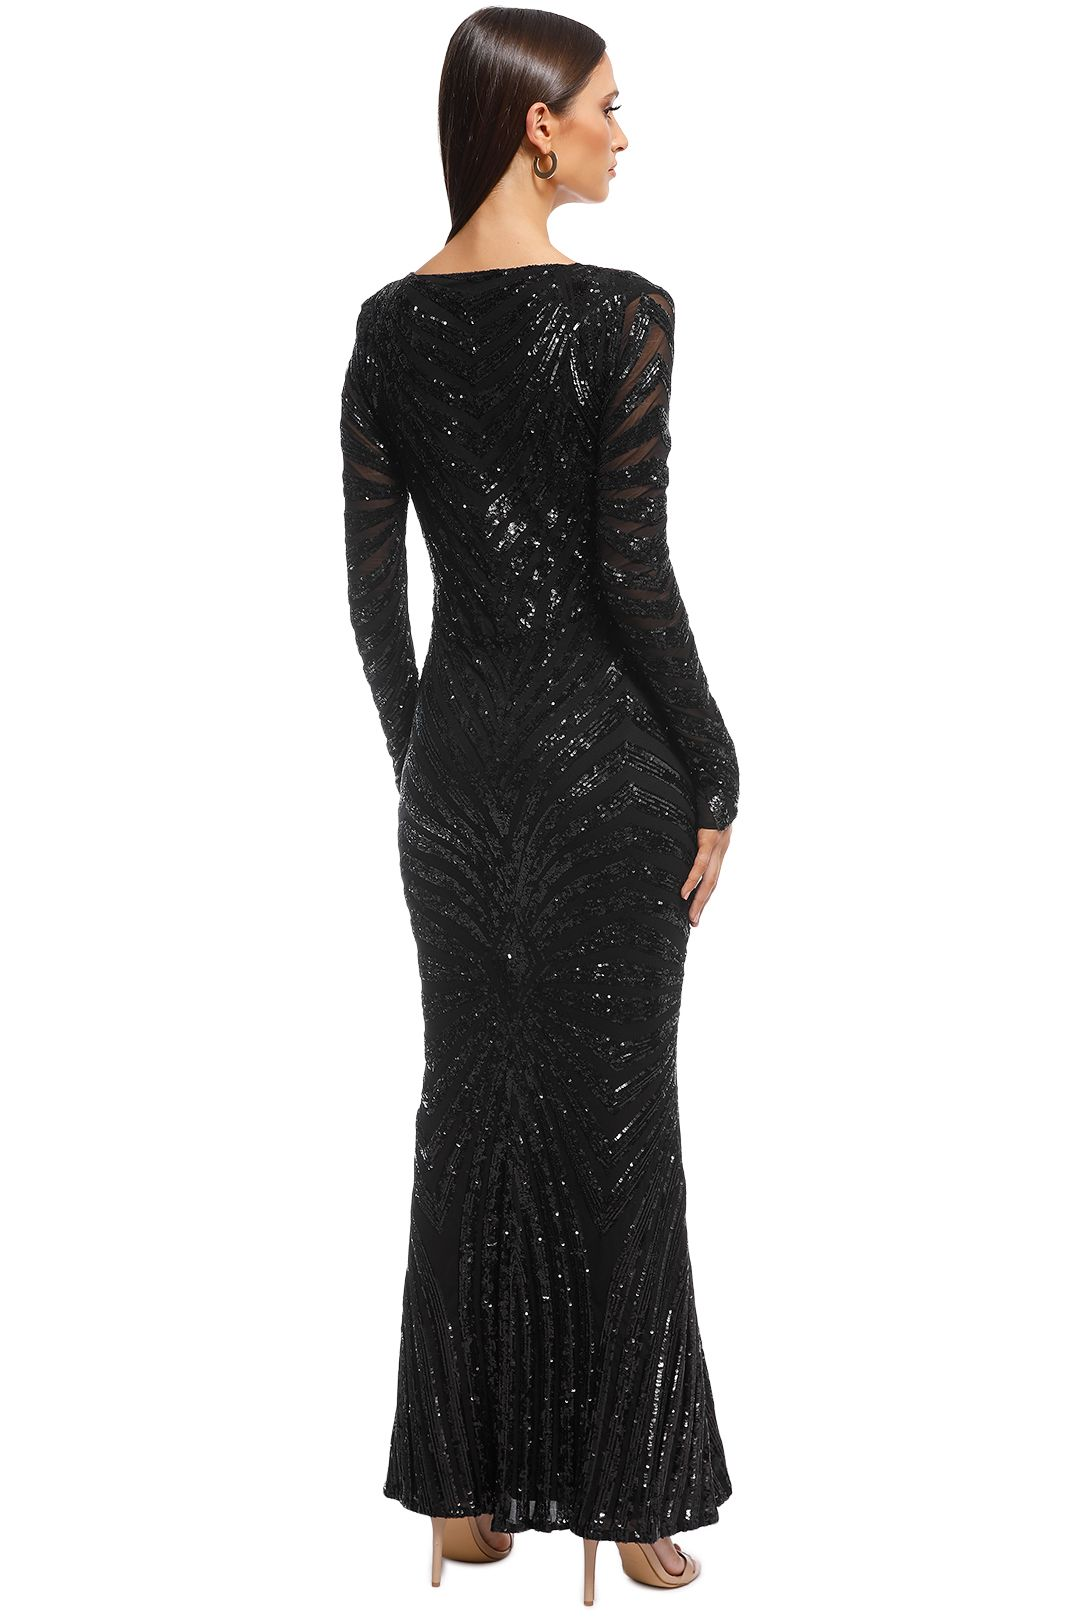 Ae'lkemi - Art Deco Sequin Gown - Black - Back